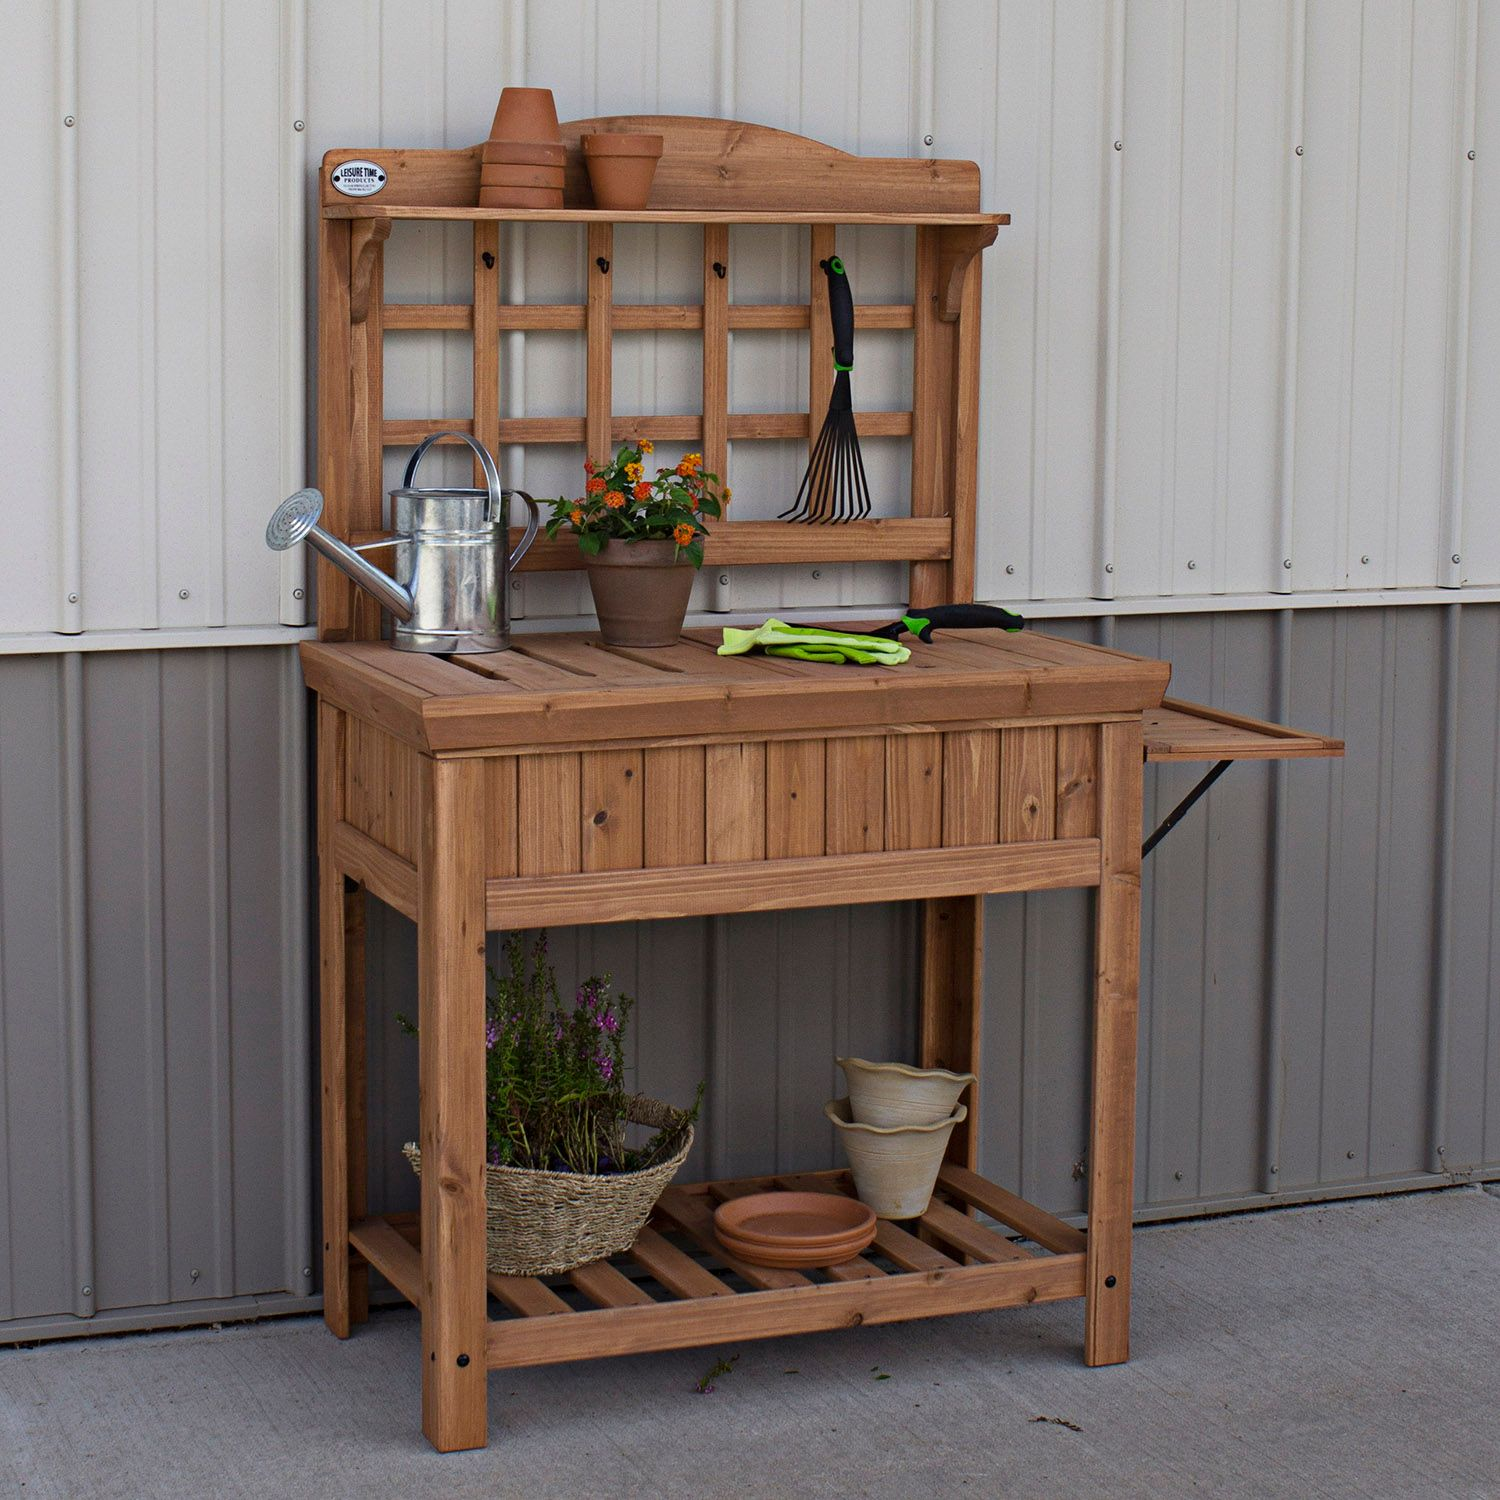 Garden Potting Bench: Garden Work Station Plant Soil Pot Solid Wood Construction